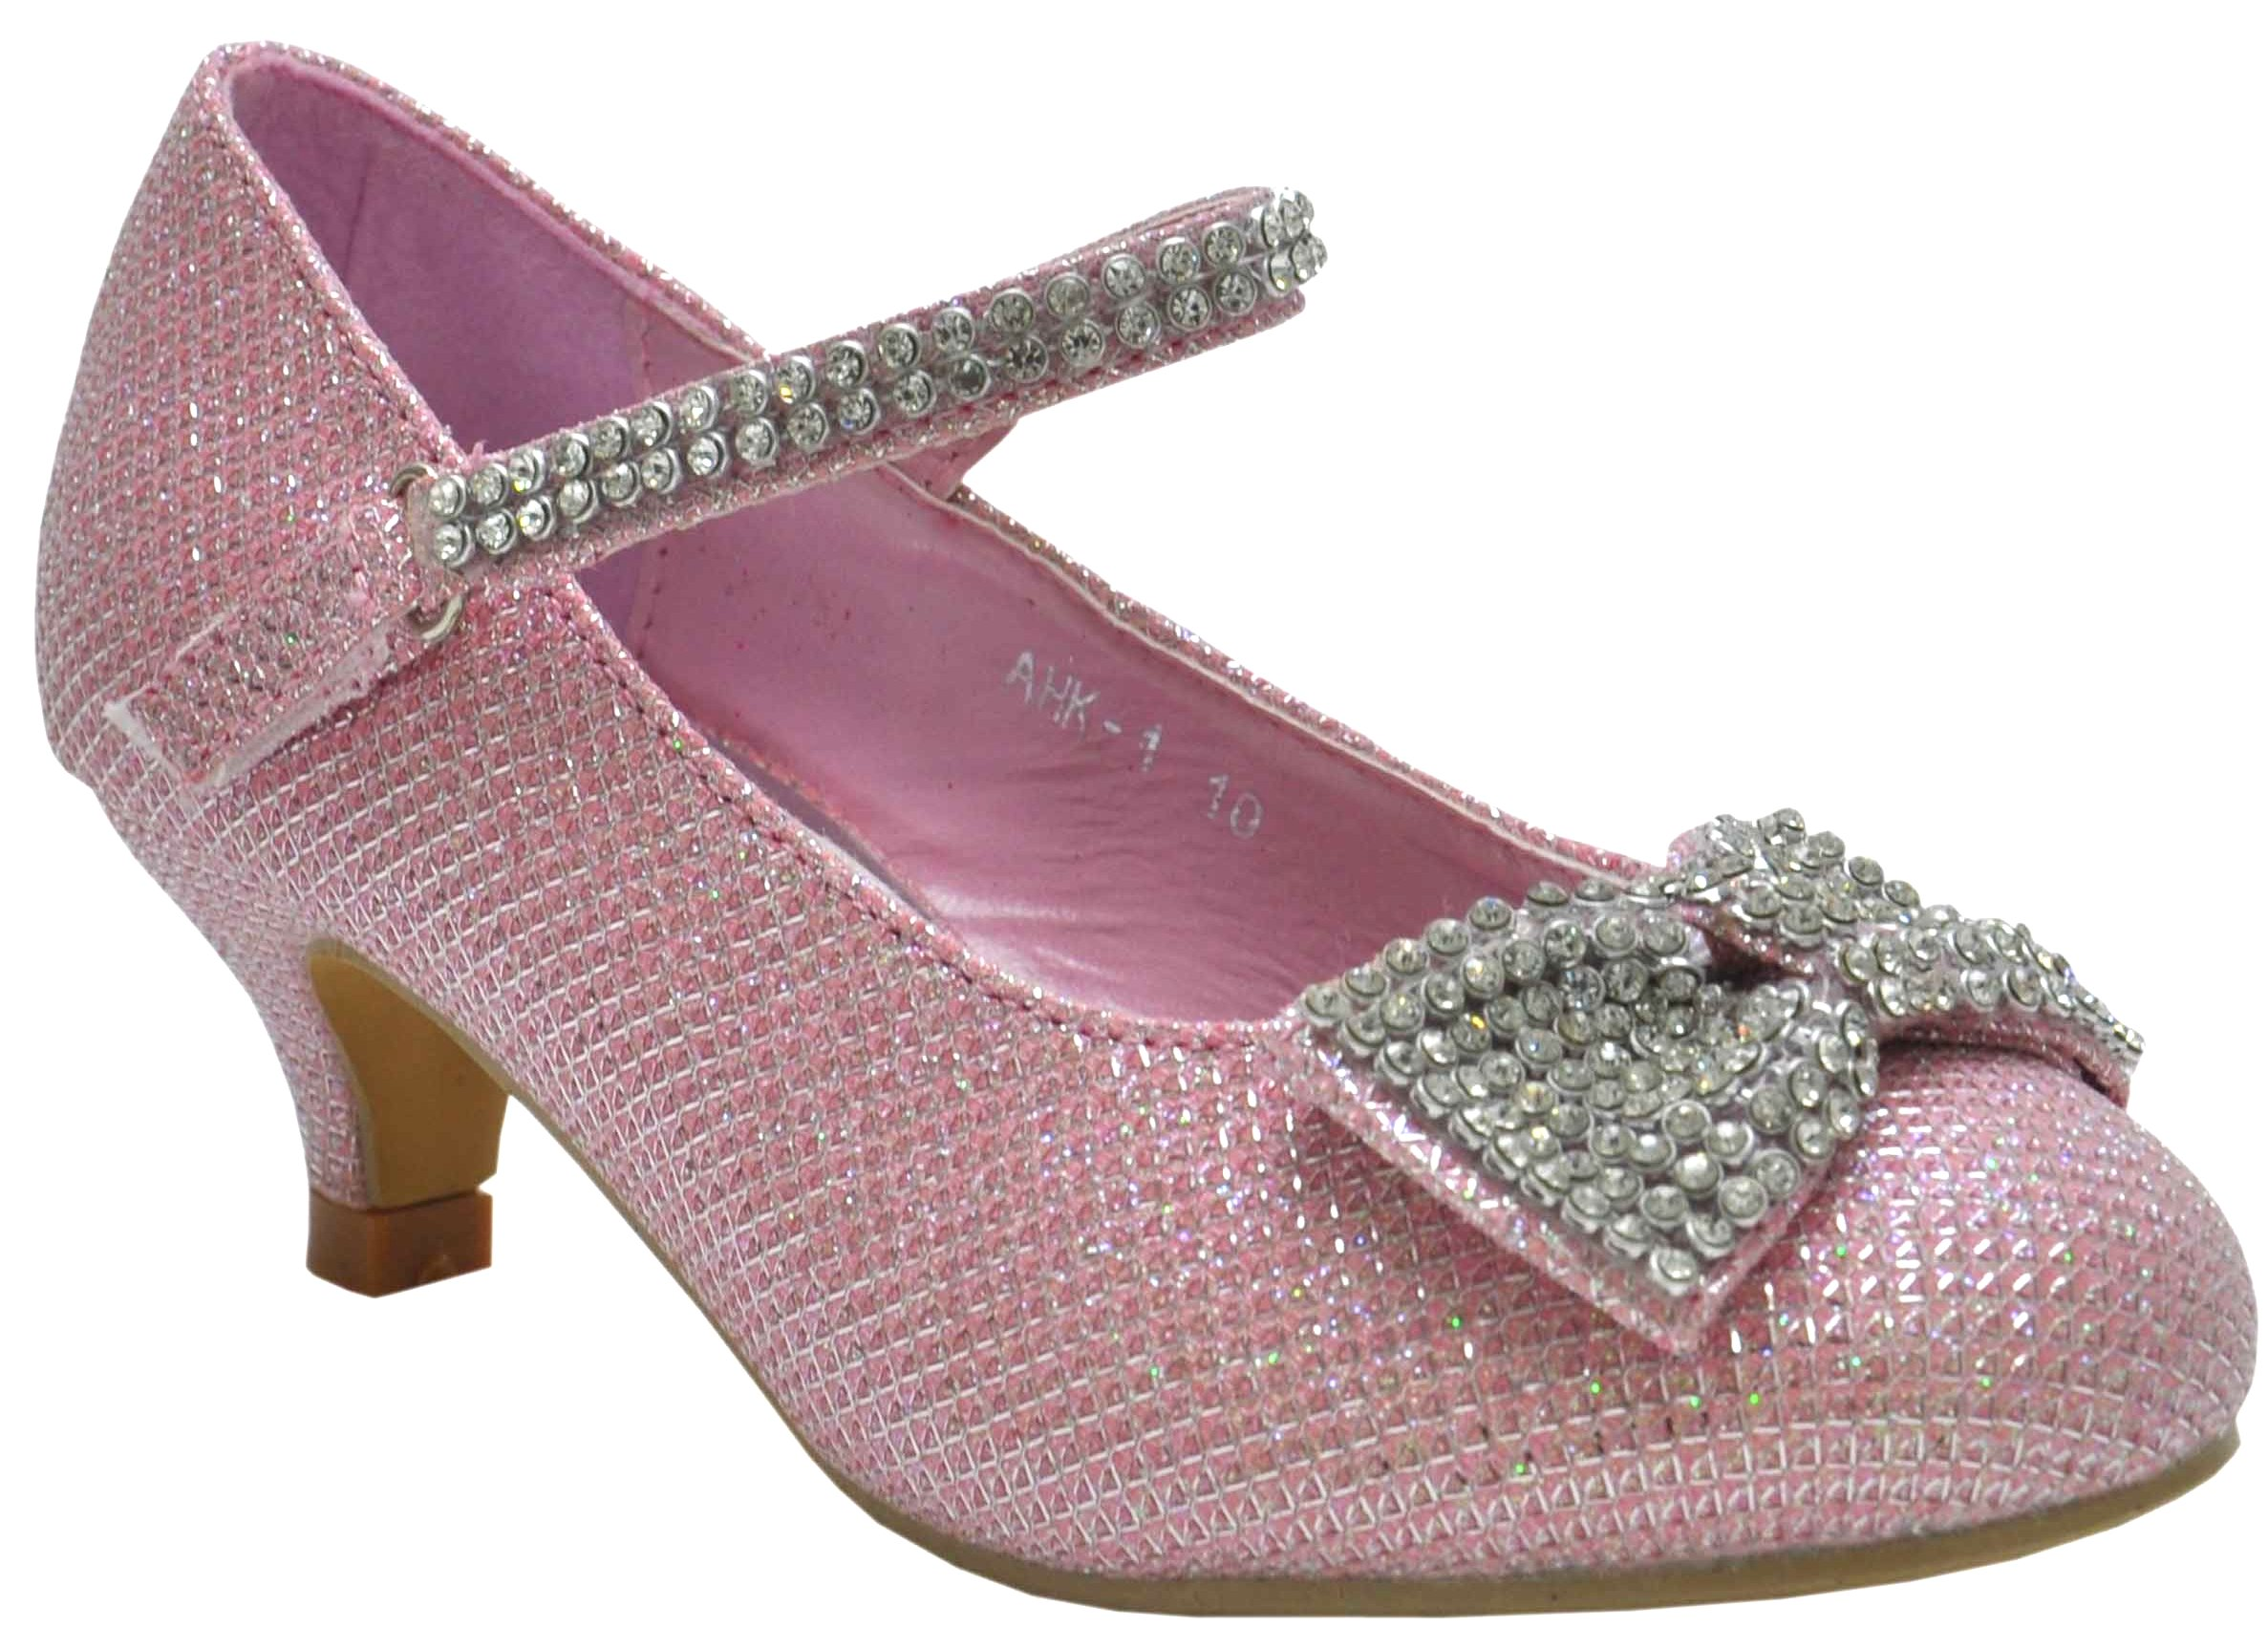 Small Heel Glittery Shoes Size